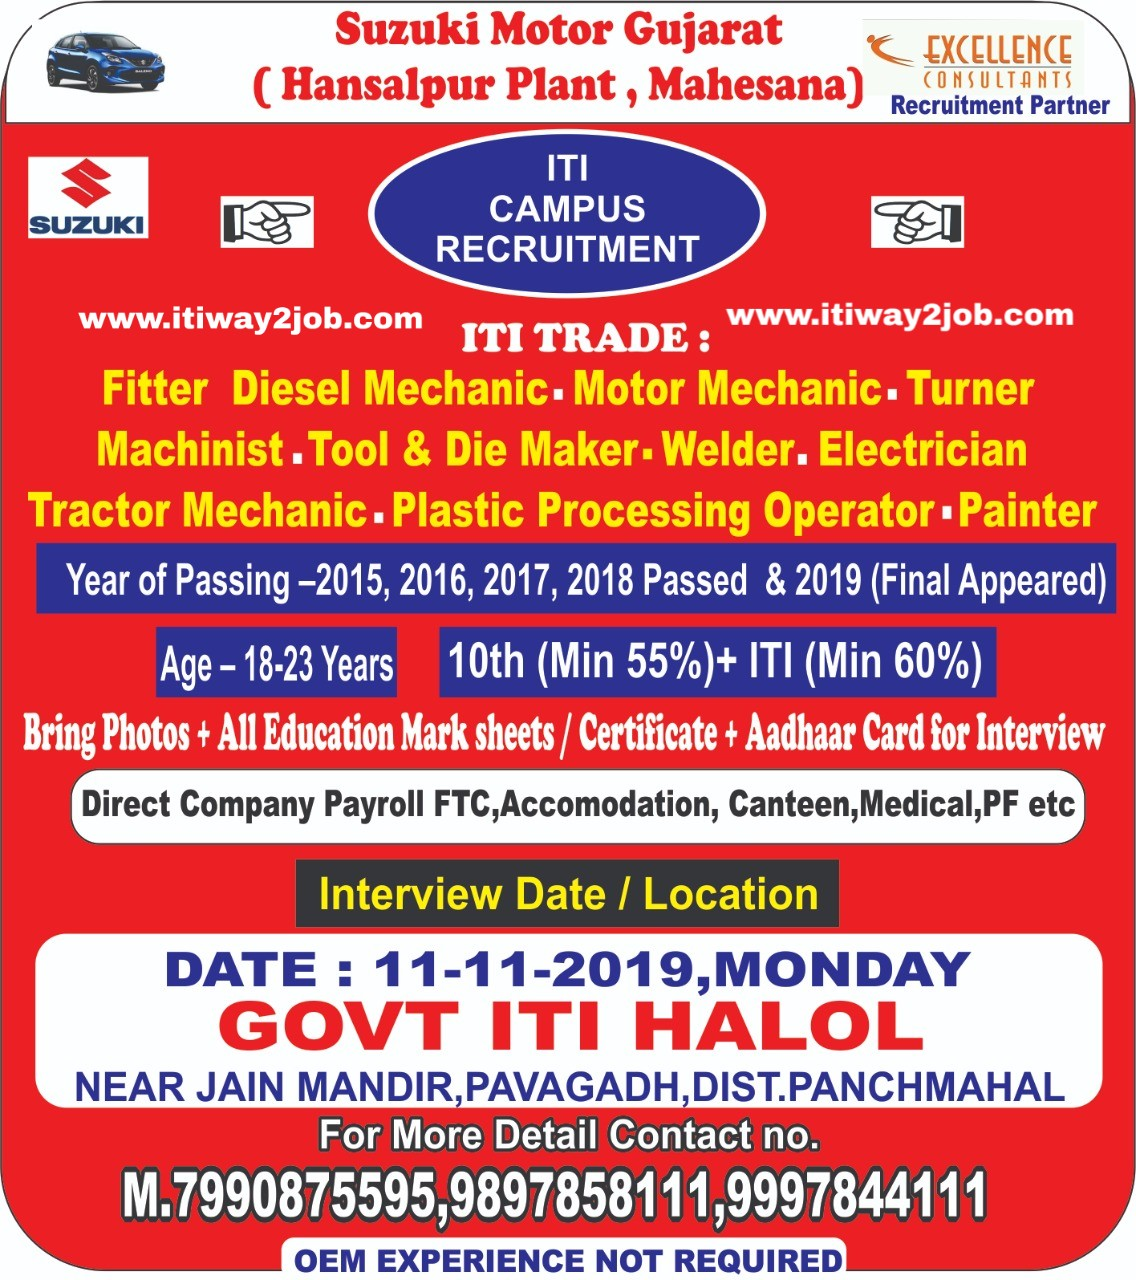 Iti Jobs In Suzuki Motor Gujarat India Ltd